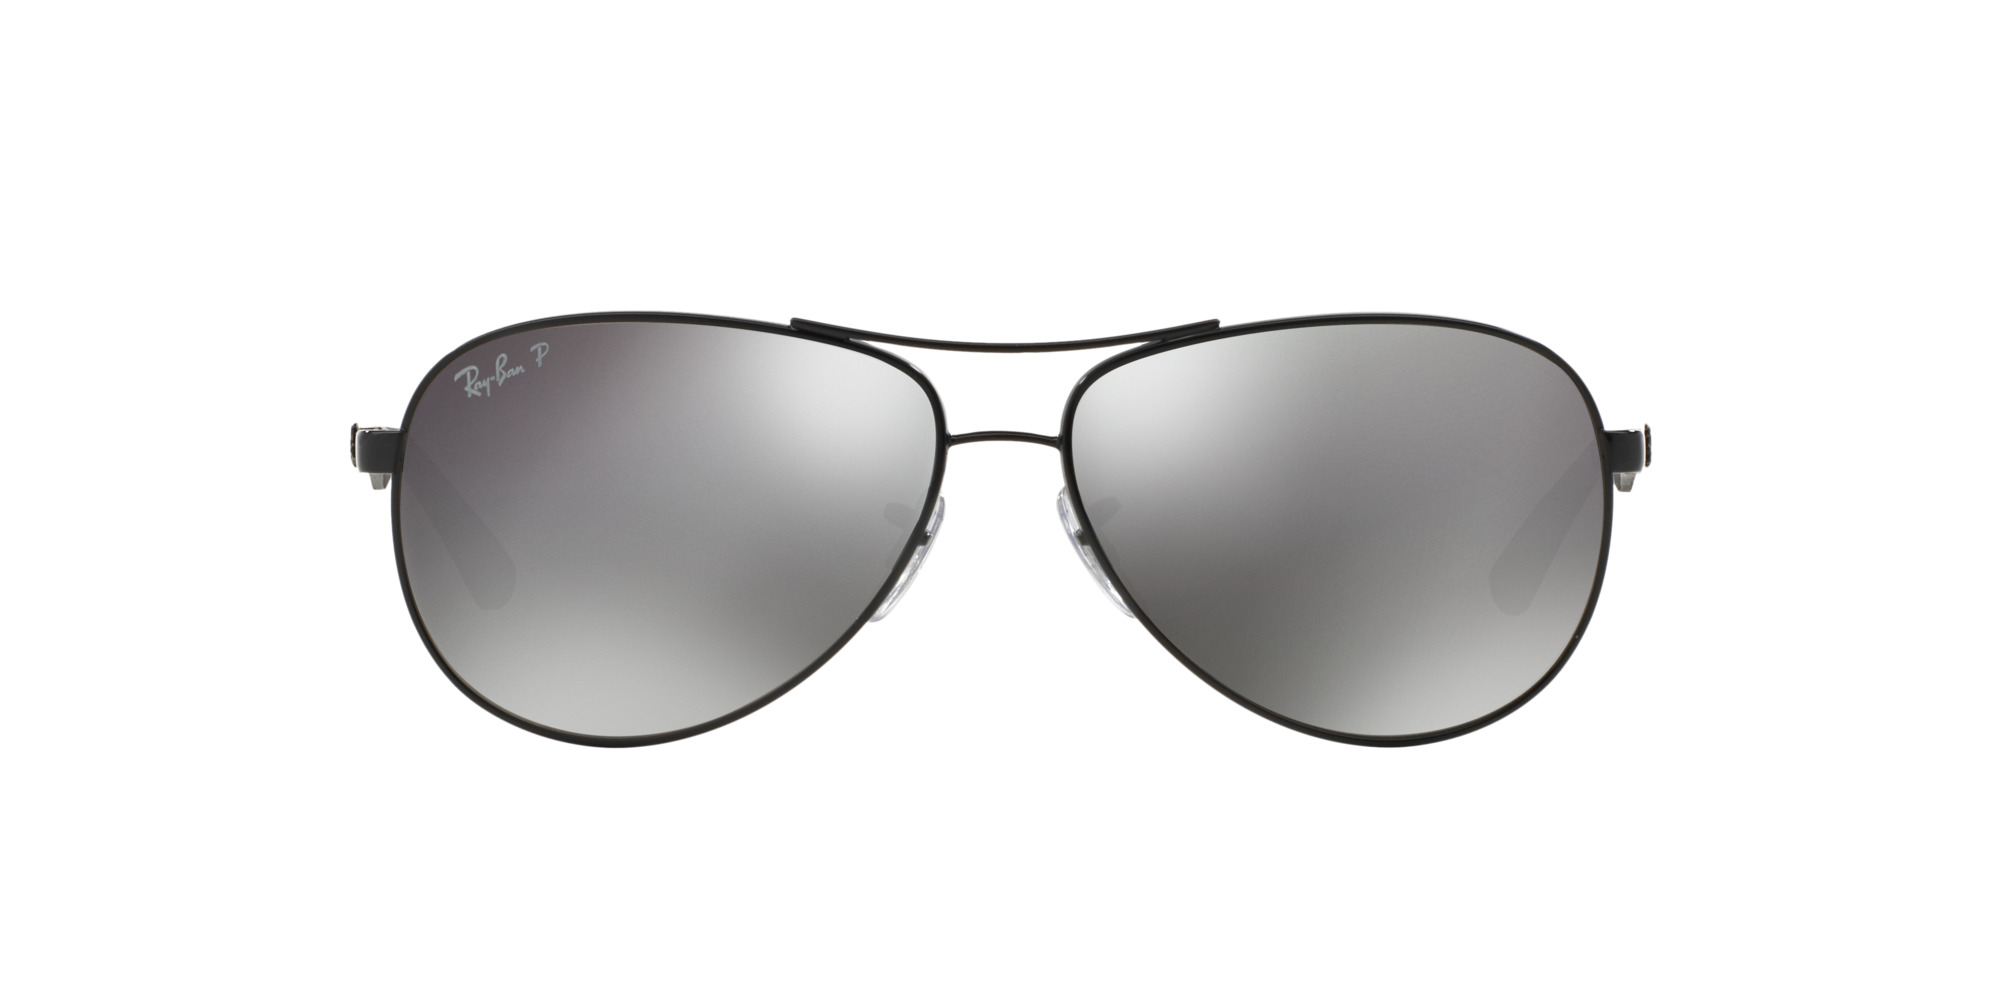 RAY-BAN RB 8313 002/K7 POLARIZADAS 58mm.-360